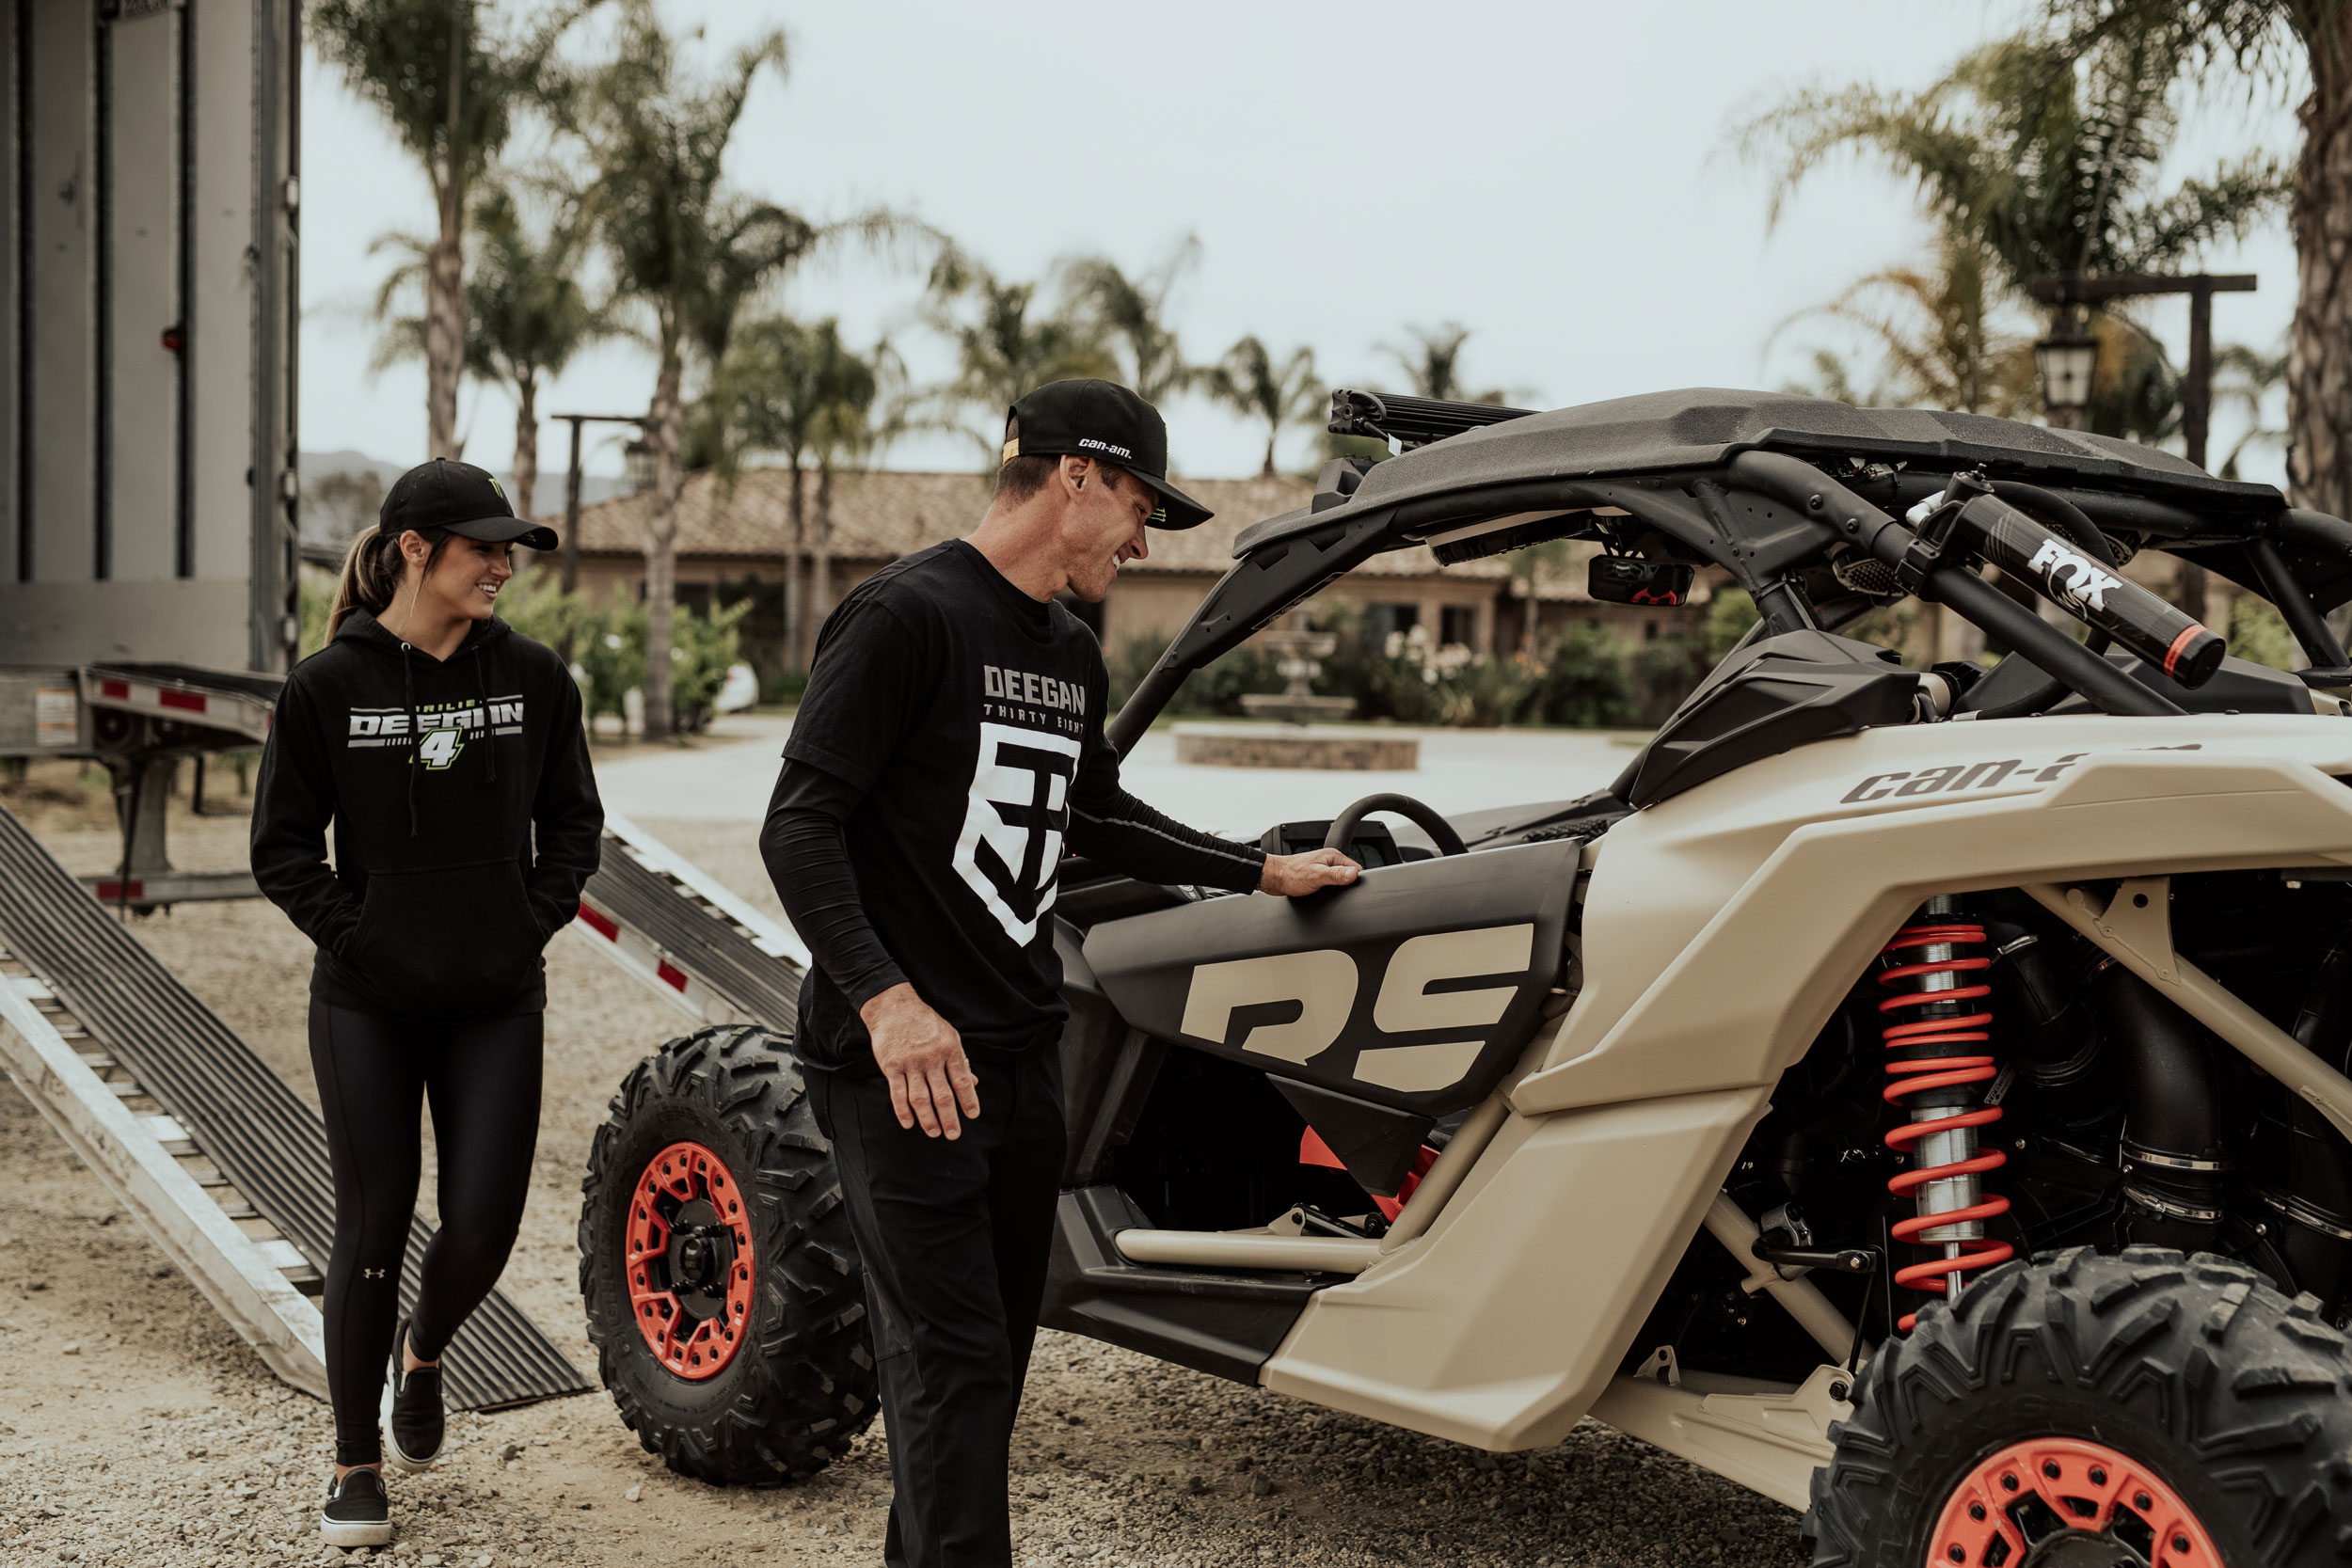 Bryan and Hailie Deegan with their Can-Am Maverick